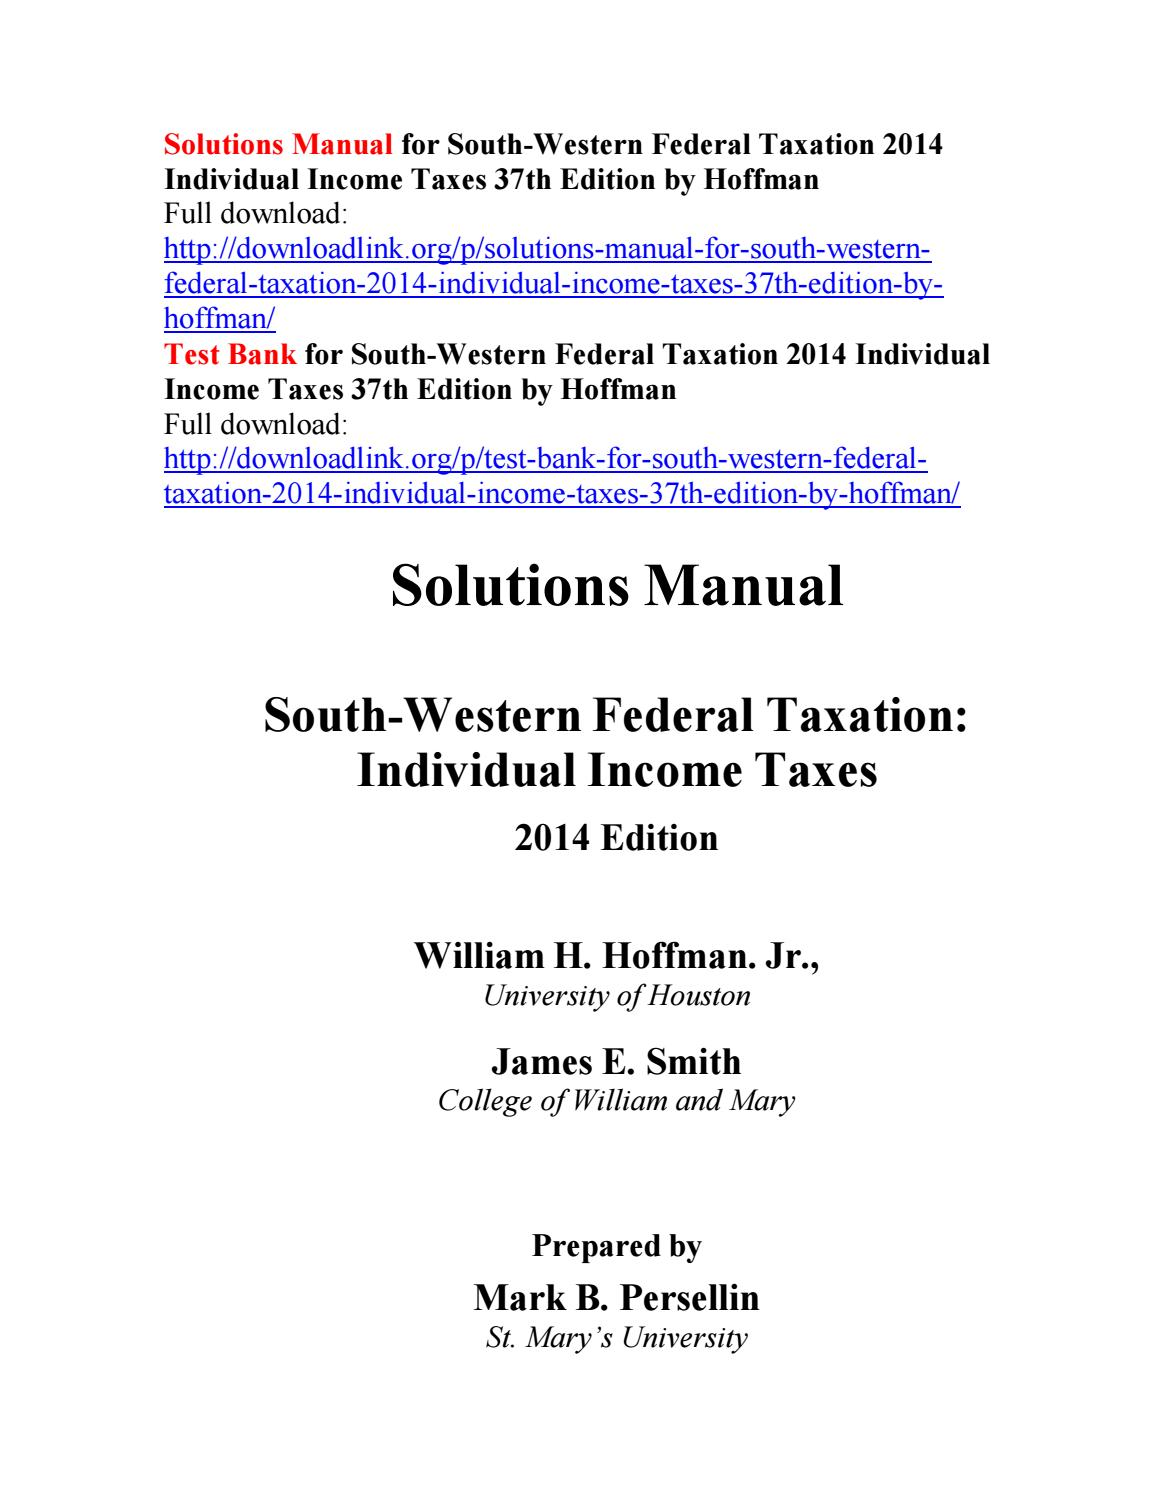 Solutions manual for south western federal taxation 2014 individual income  taxes 37th edition by hof by Nickelr111 - issuu